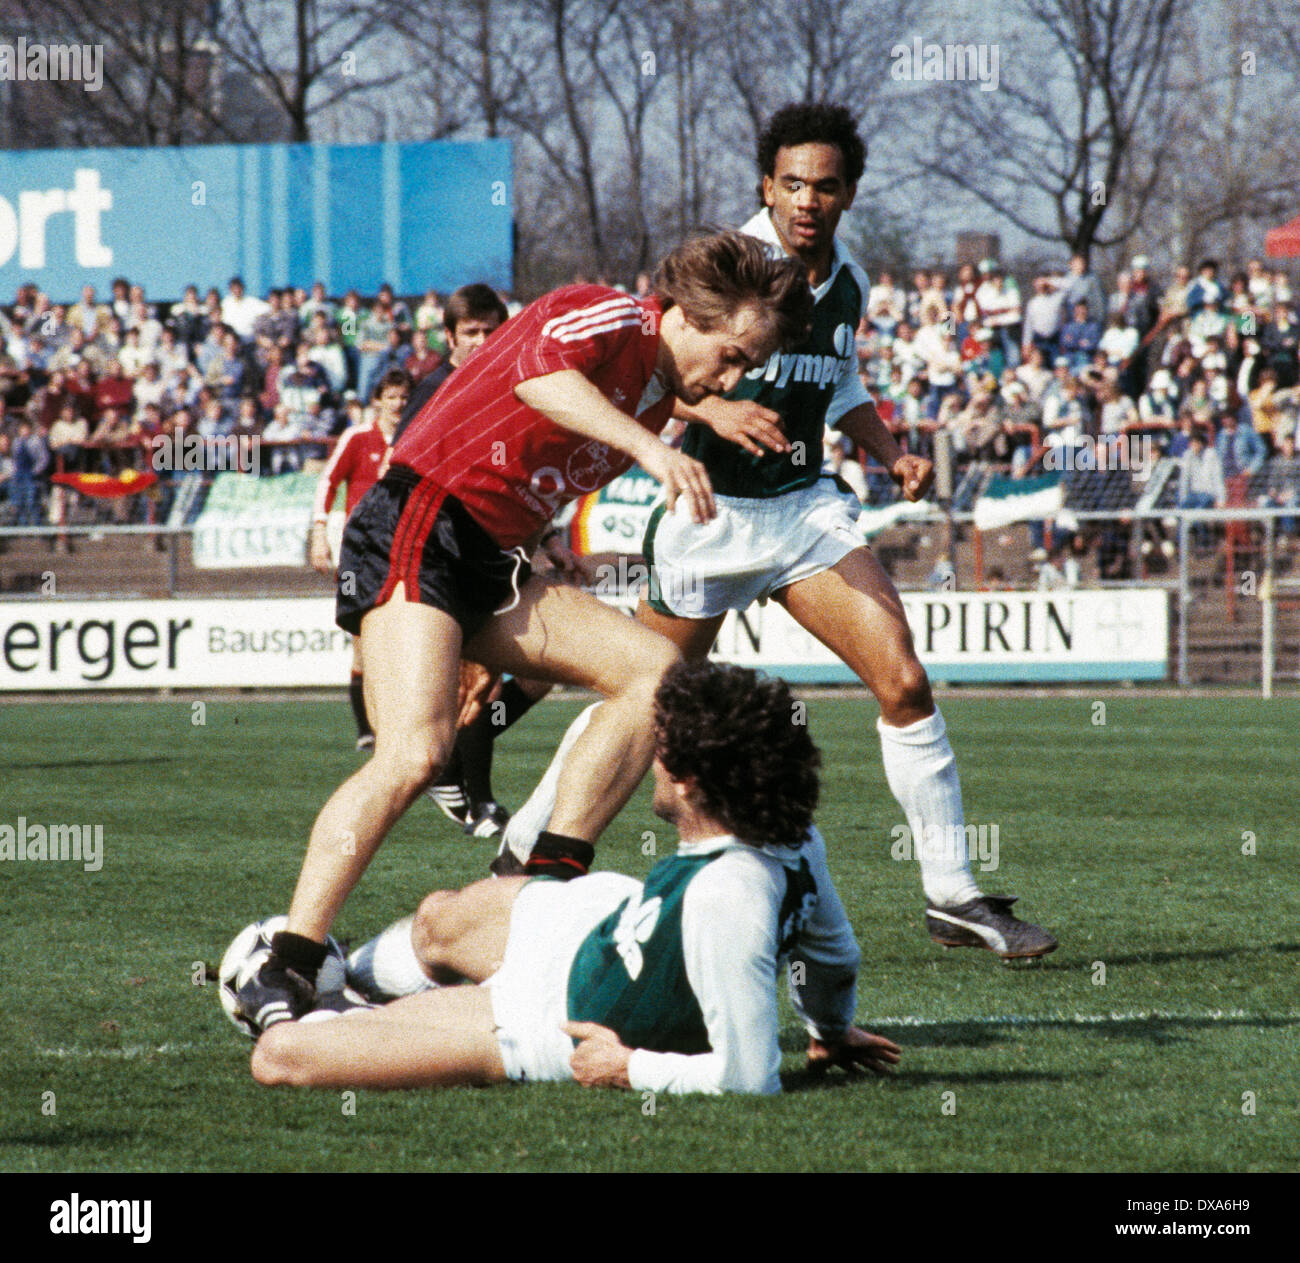 football, Bundesliga, 1983/1984, Ulrich Haberland Stadium, Bayer 04 Leverkusen versus SV Werder Bremen 0:0, scene of the match, tackling of Bruno Pezzey (Werder), left Helmut Winklhofer (Bayer), right Rigobert Gruber (Werder) - Stock Image